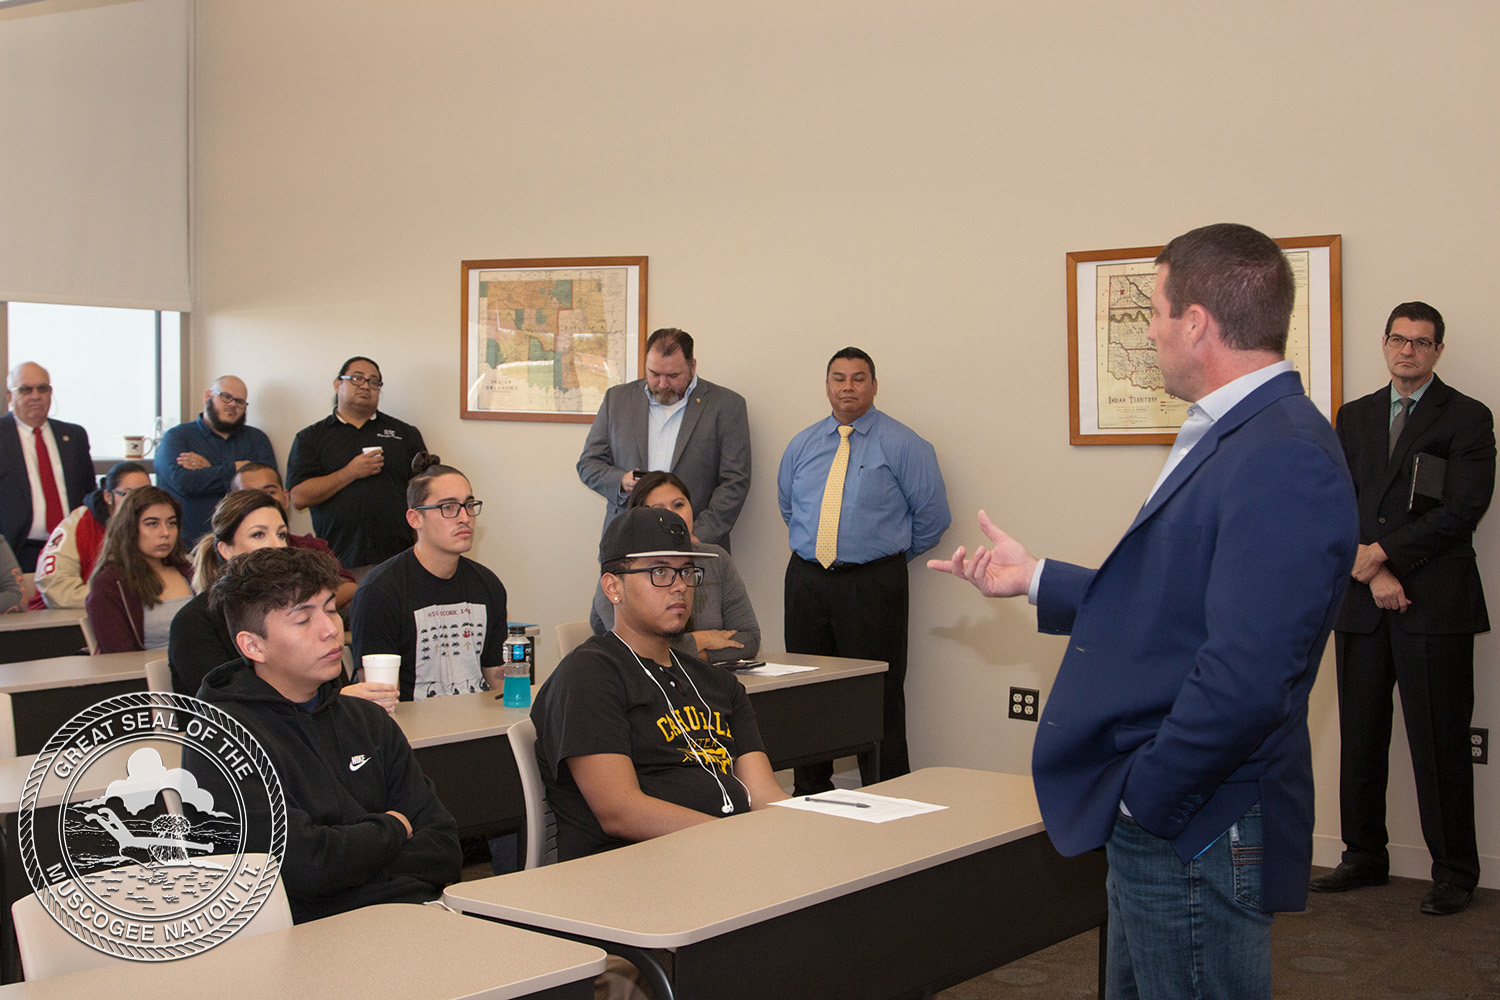 Rep. Mullin speaks to College of the Muscogee Nation students